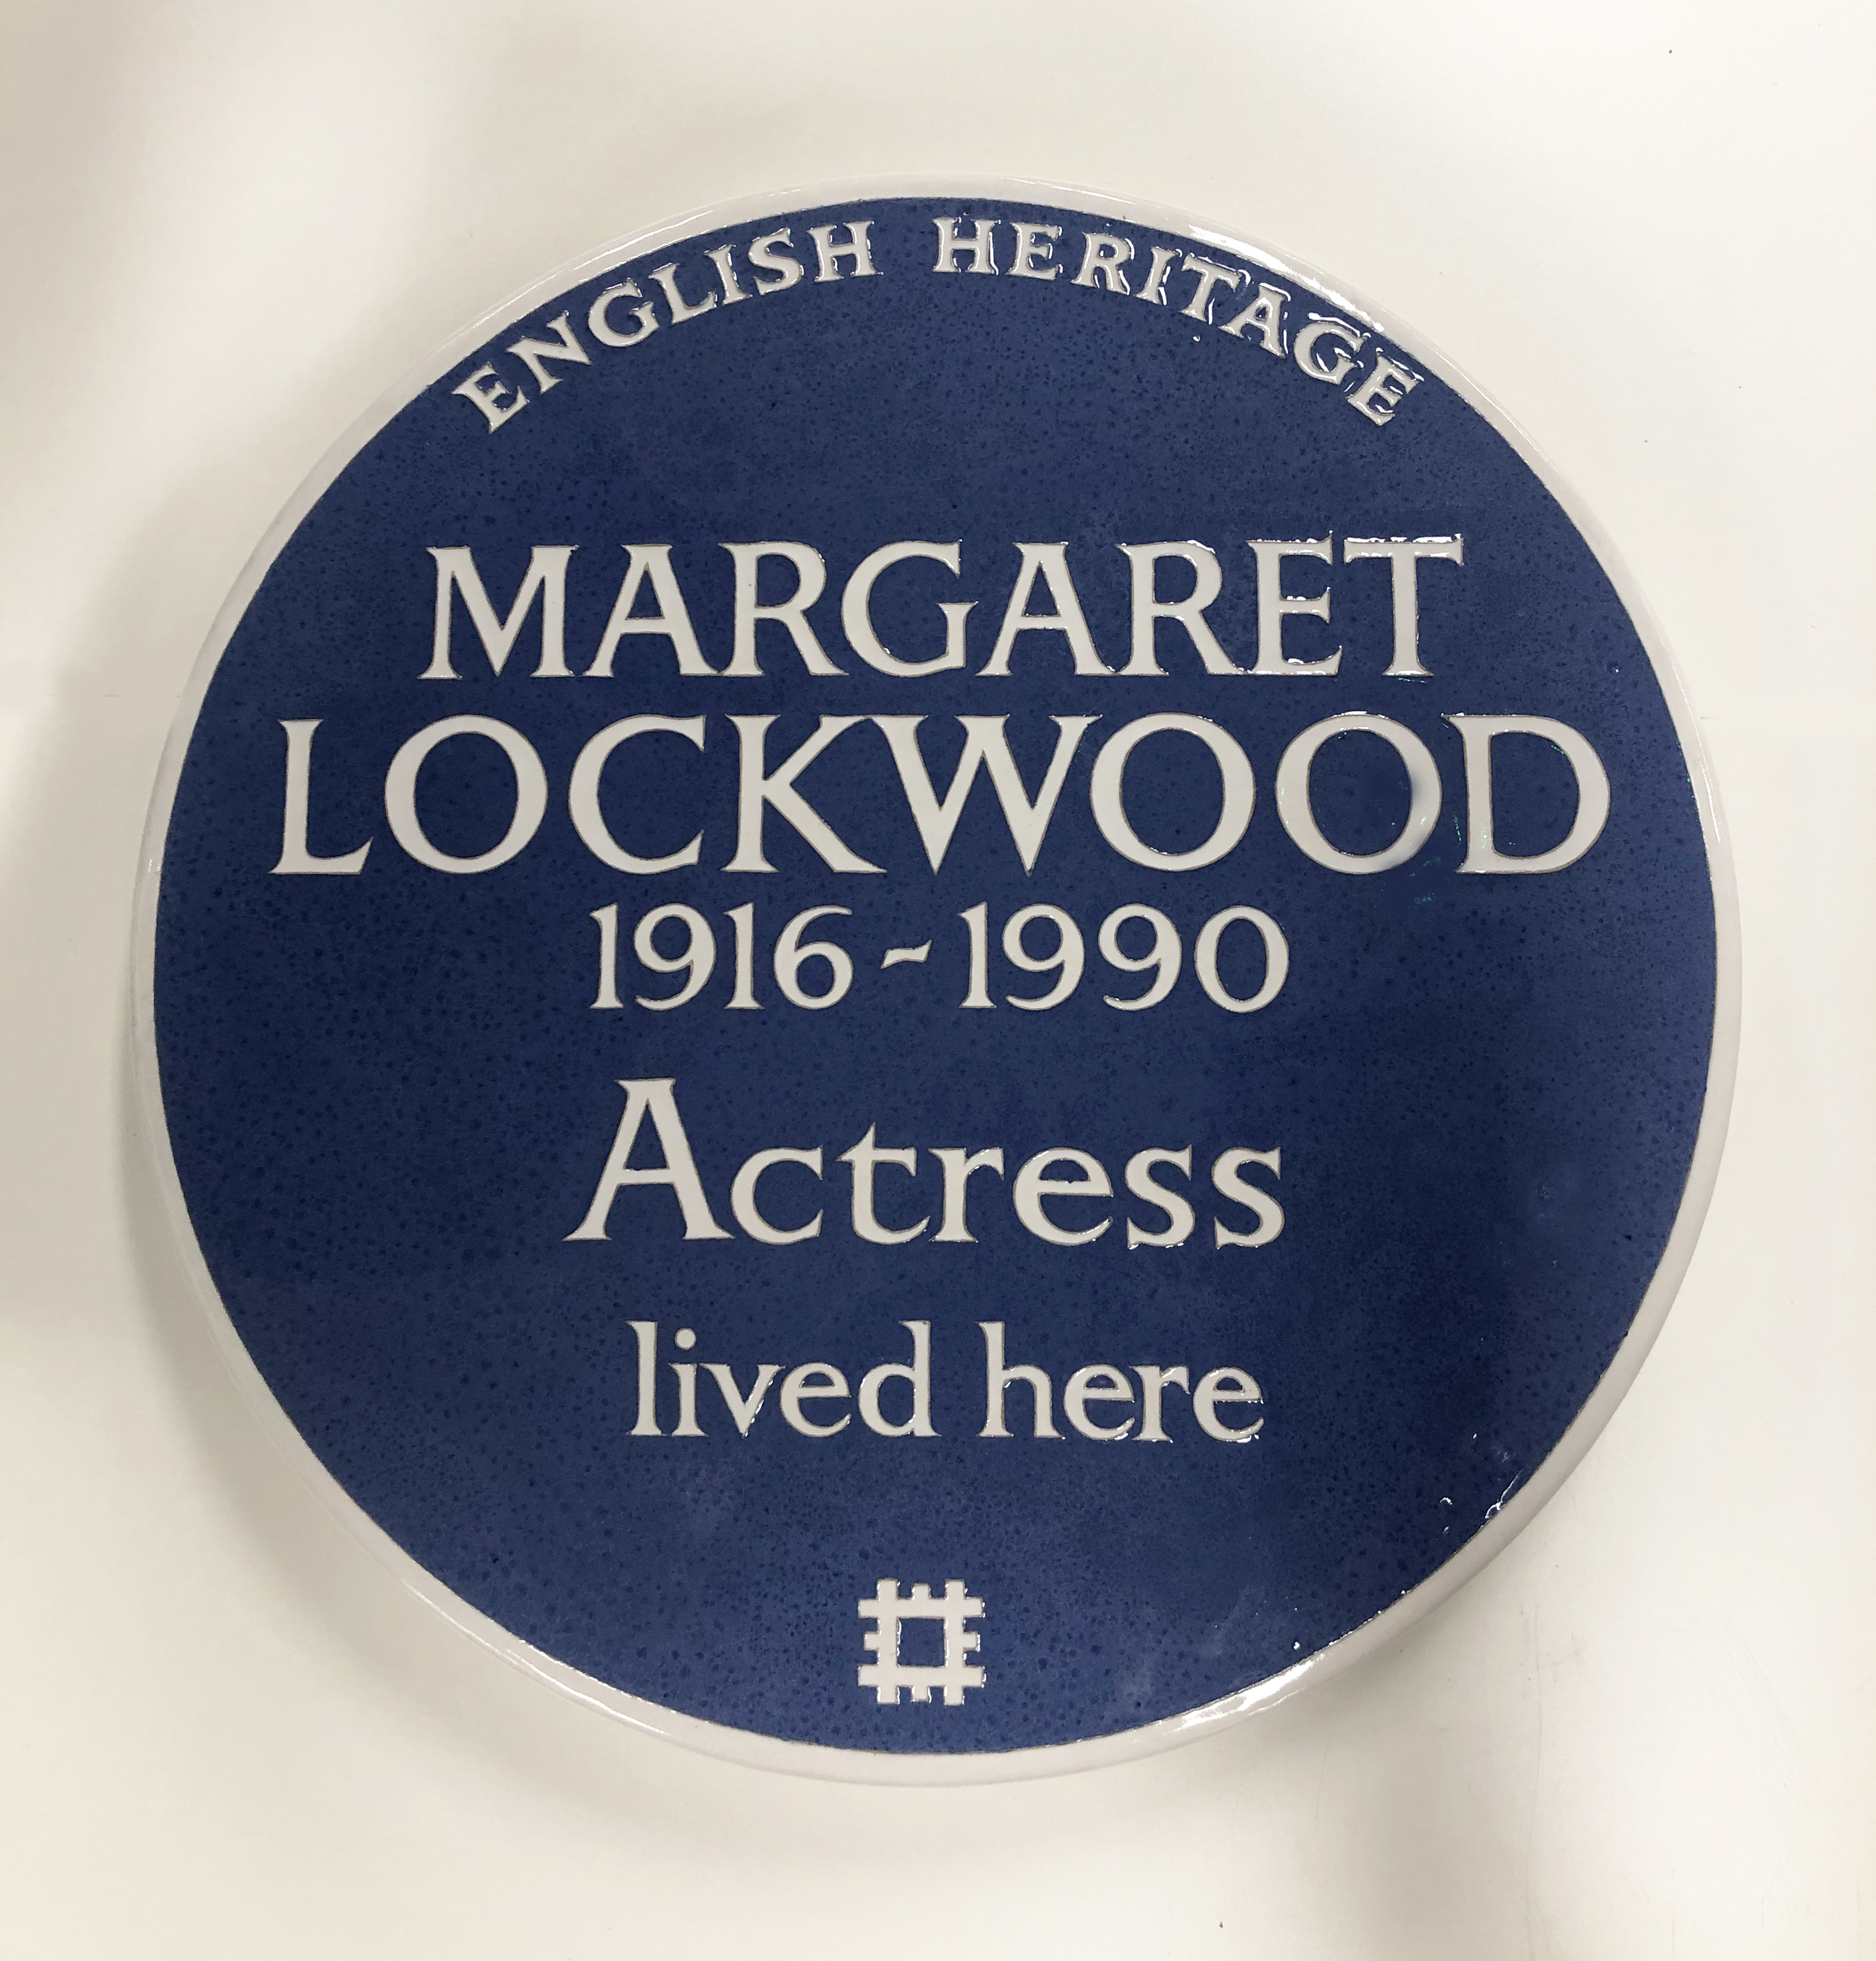 The plaque to Margaret Lockwood